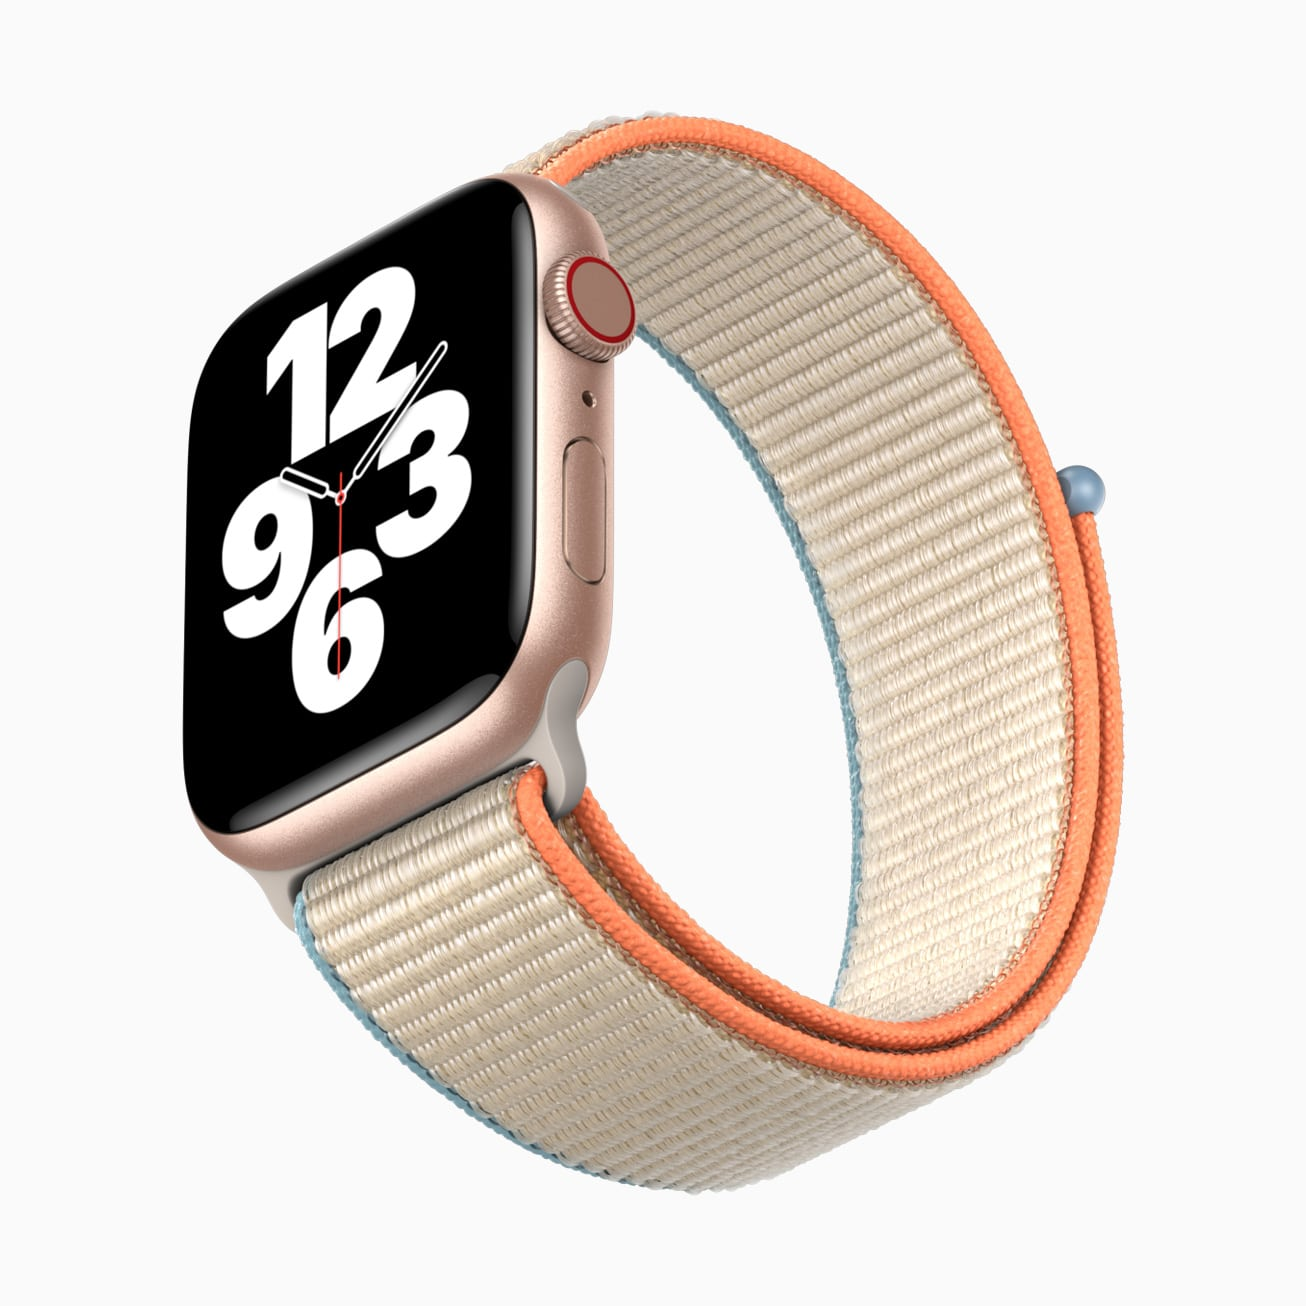 Apple Watch SE com pulseira esportiva de nylon laranja